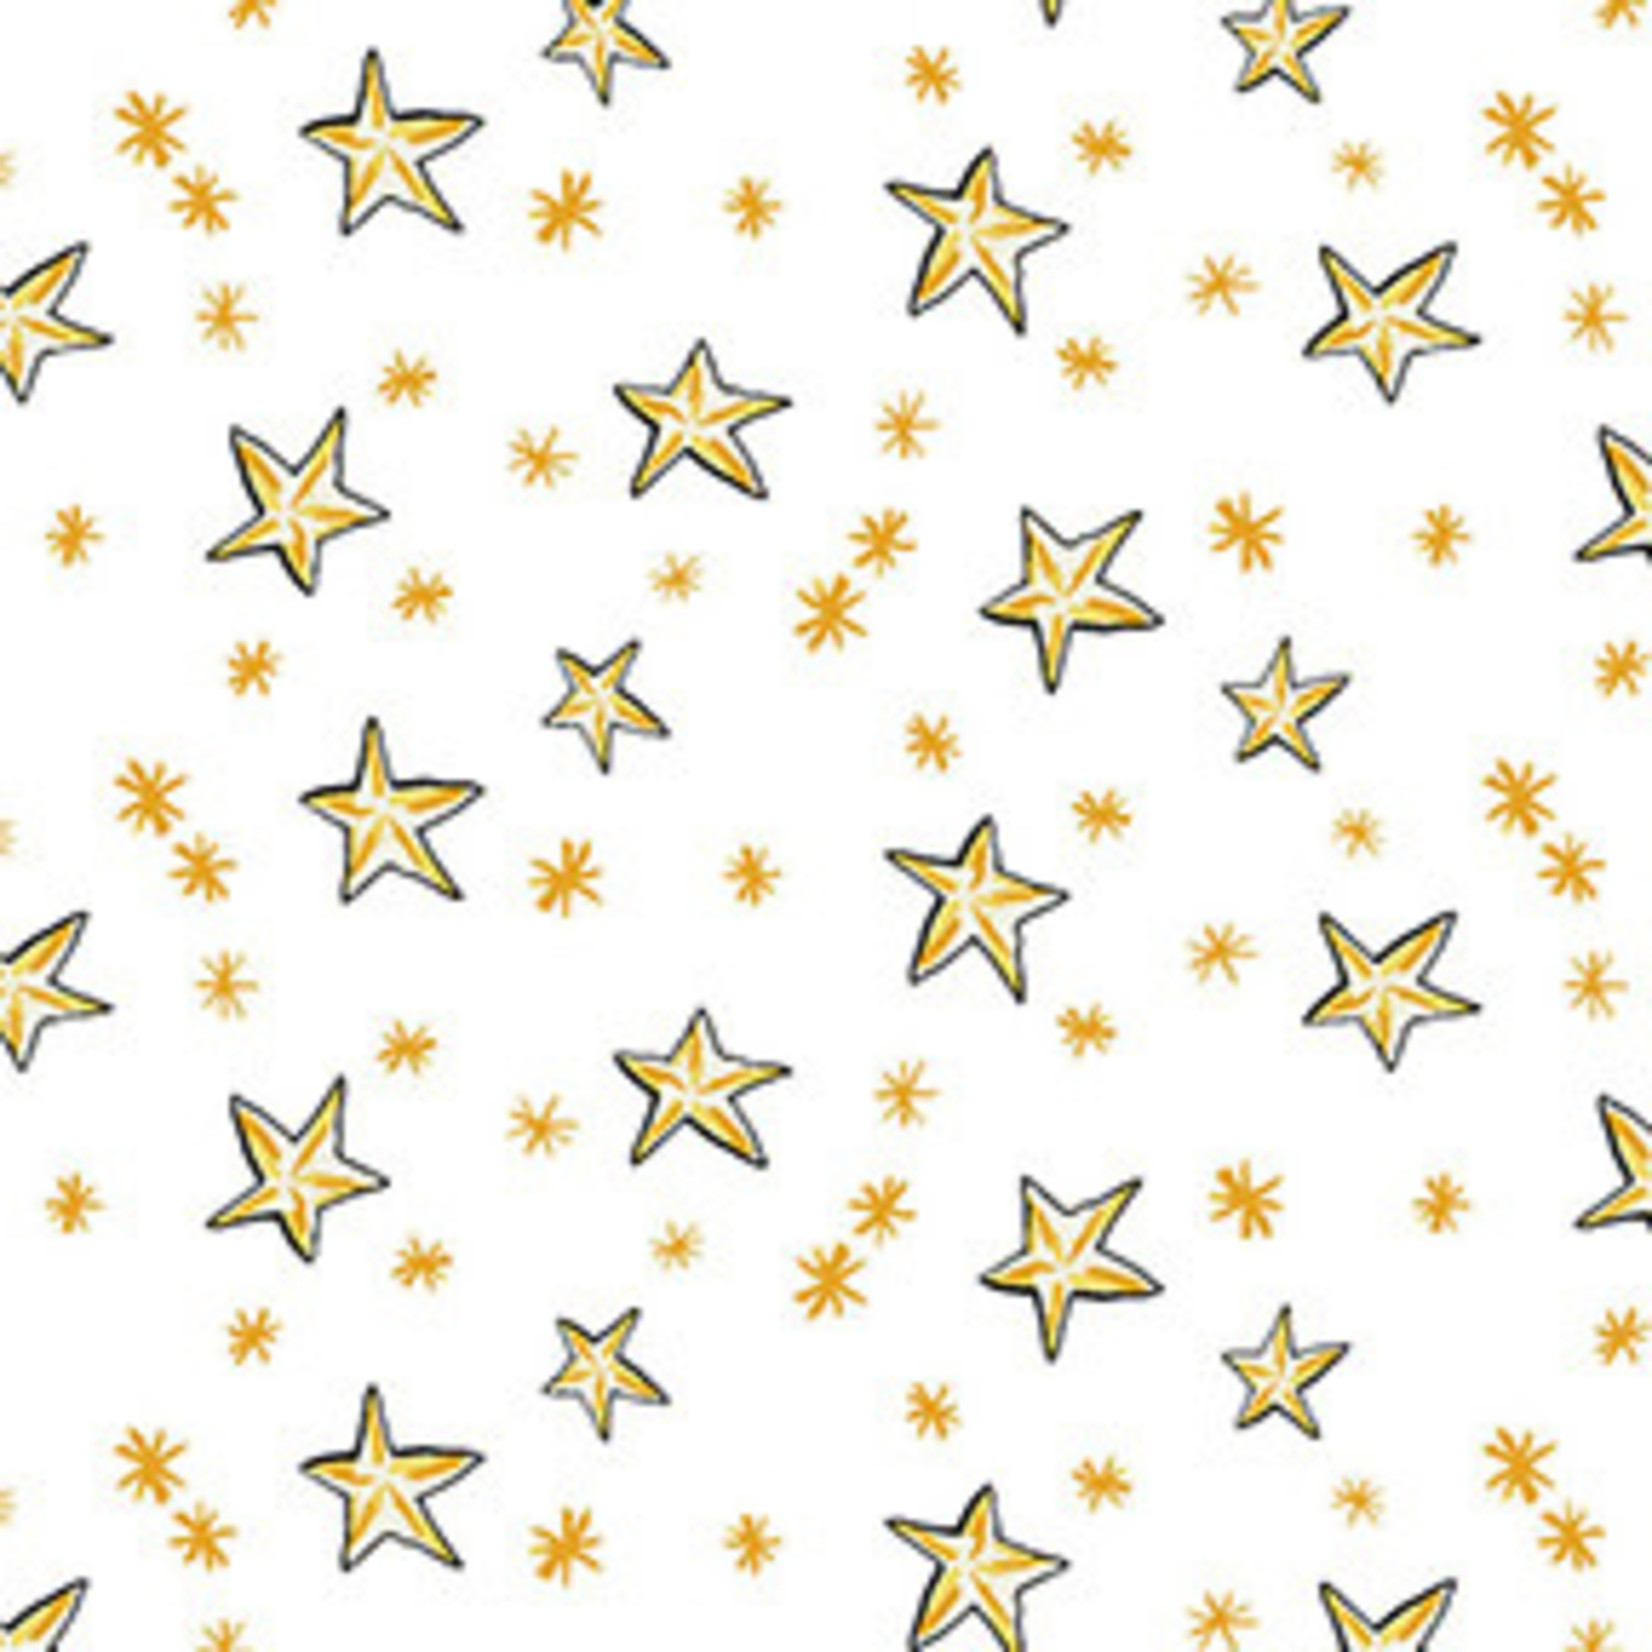 Clothworks Just What I Wanted, Stars on White per CM or $20/M